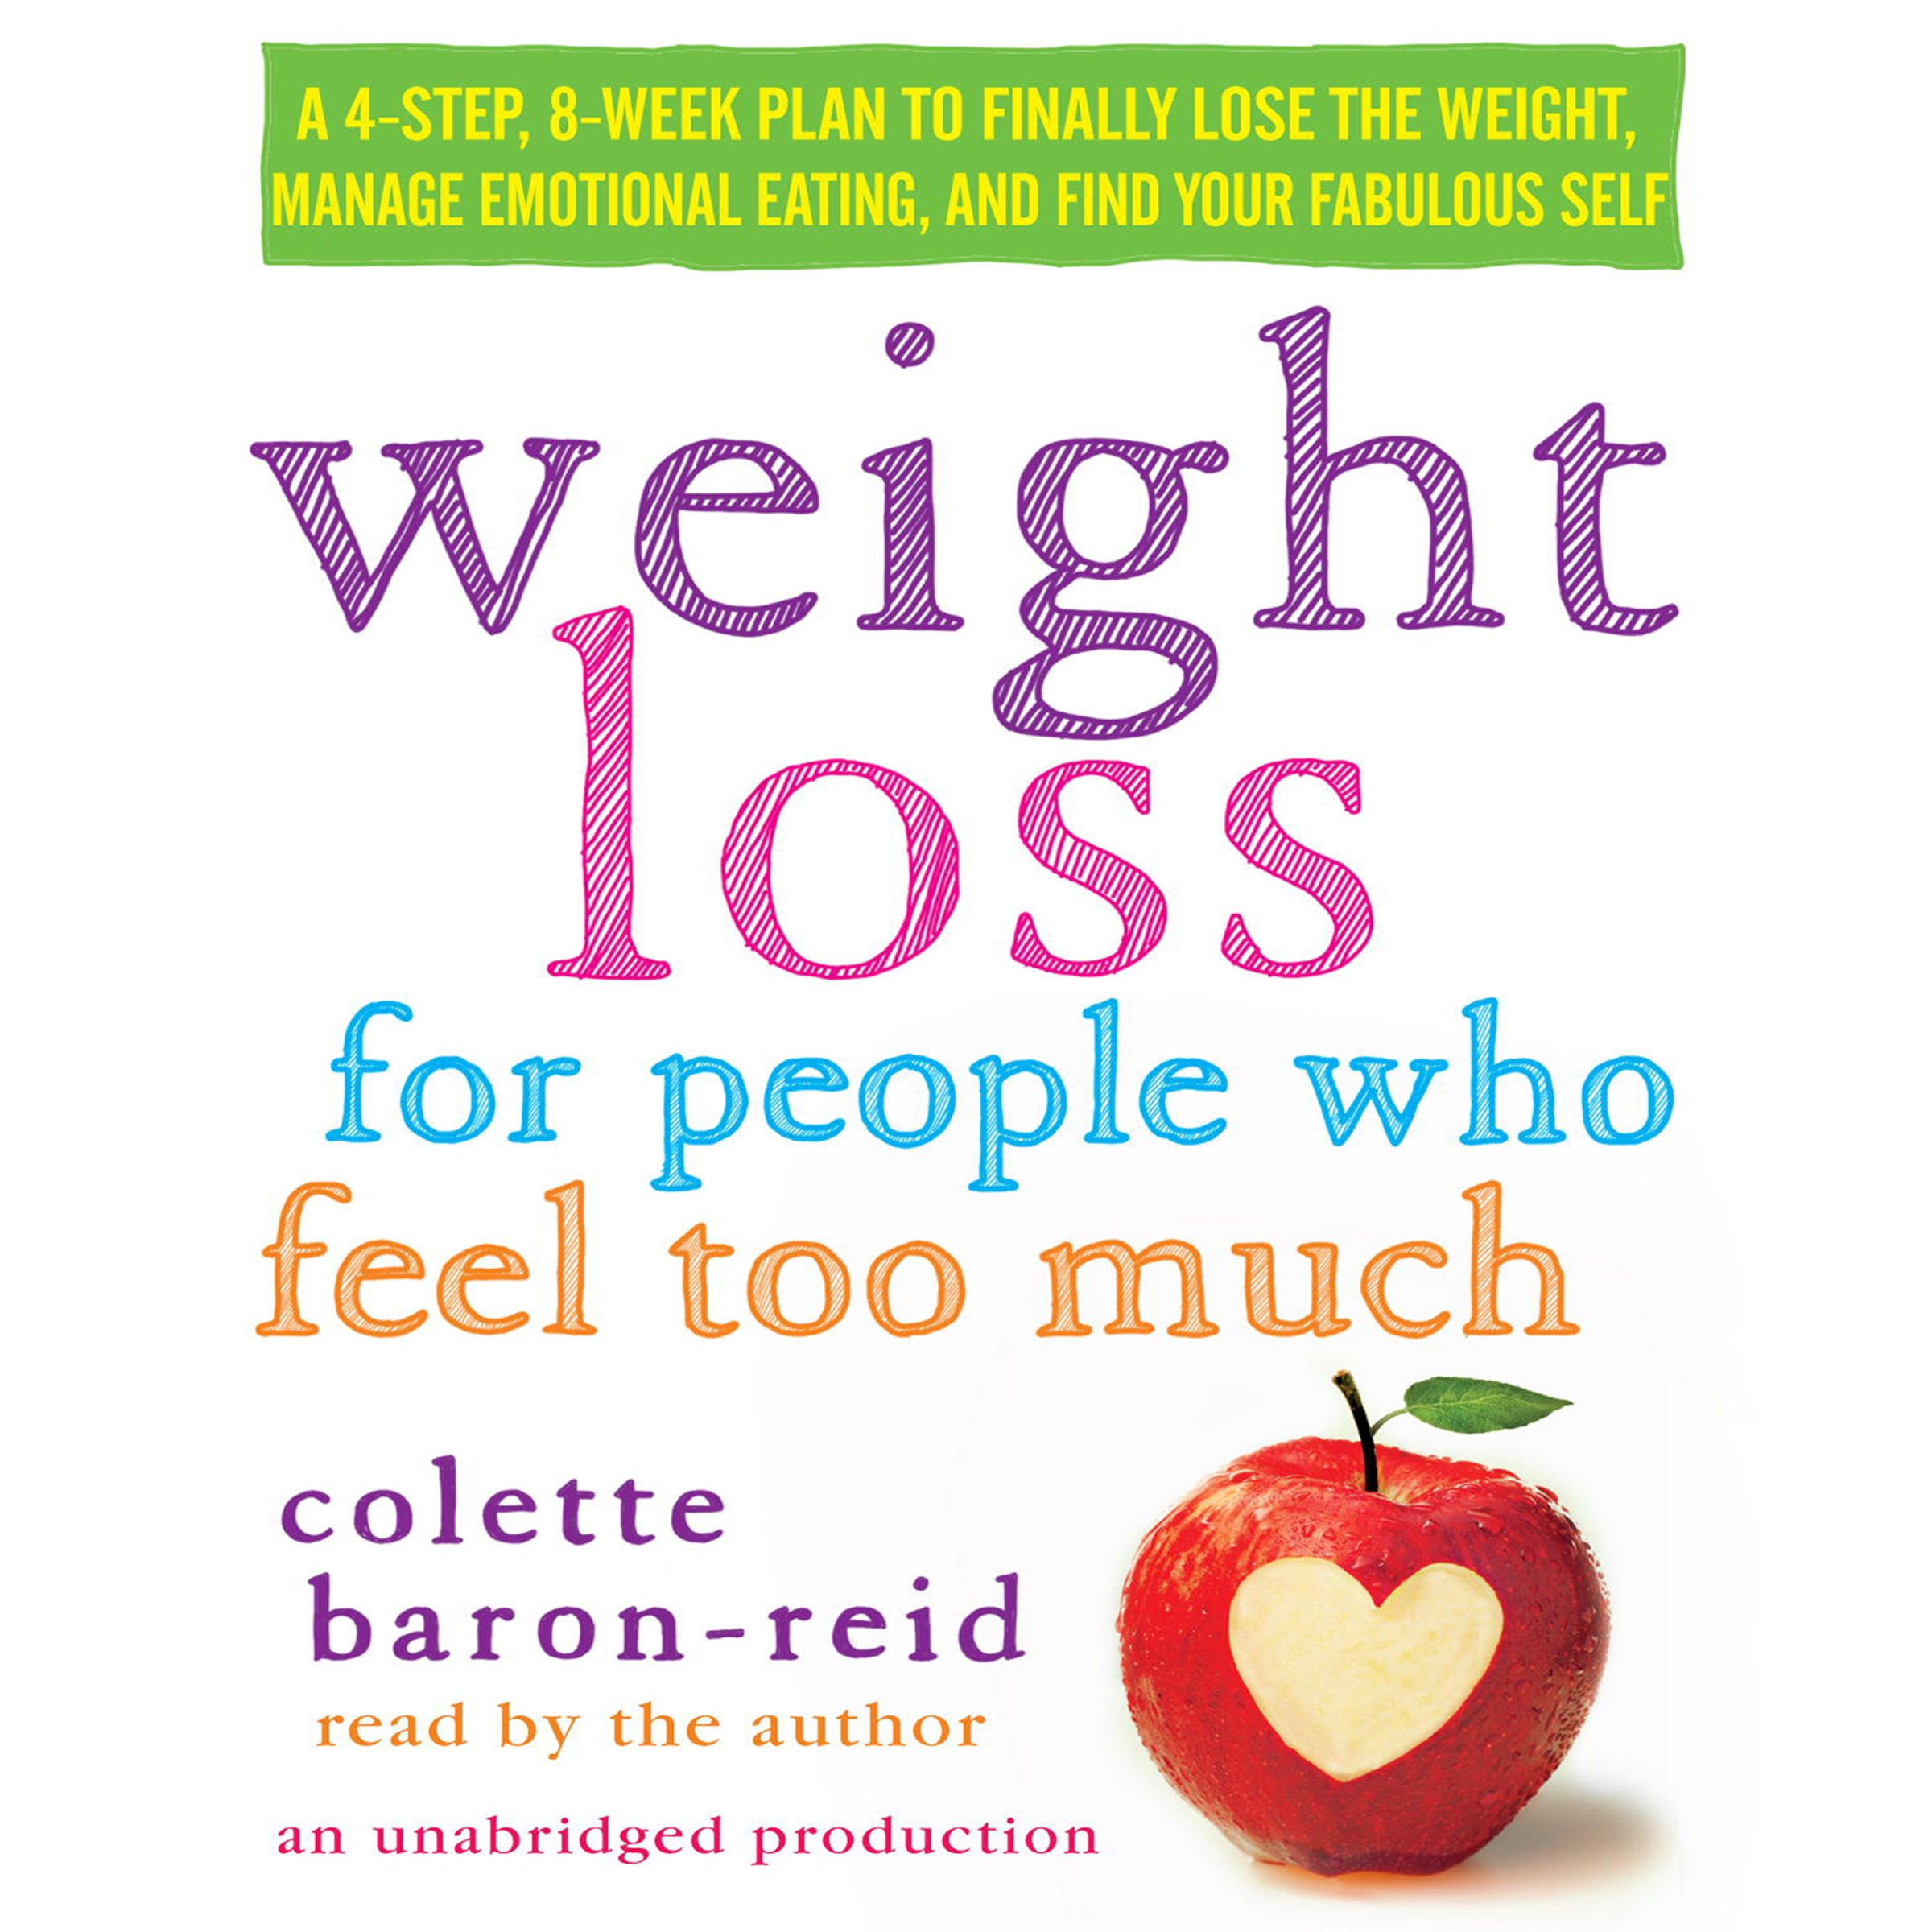 Weight Loss For People Who Feel Too Much  A 4 Step 8 Week Plan To Finally Lose The Weight Manage Emotional Eating And Find Your Fabulous Self